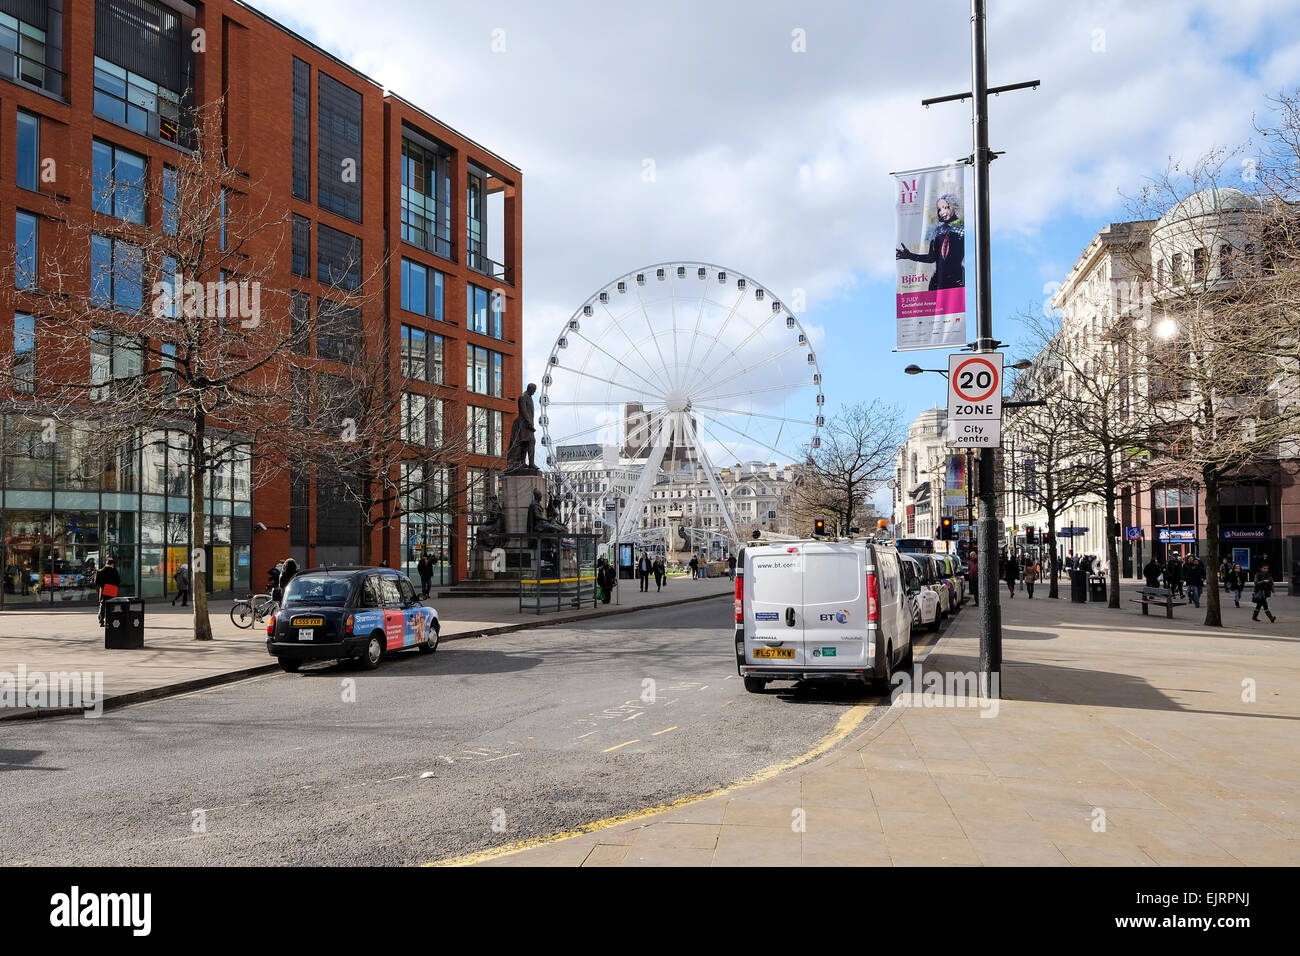 Manchester, UK: Manchester City Centre and the Big Wheel in Picadilly Gardens. - Stock Image